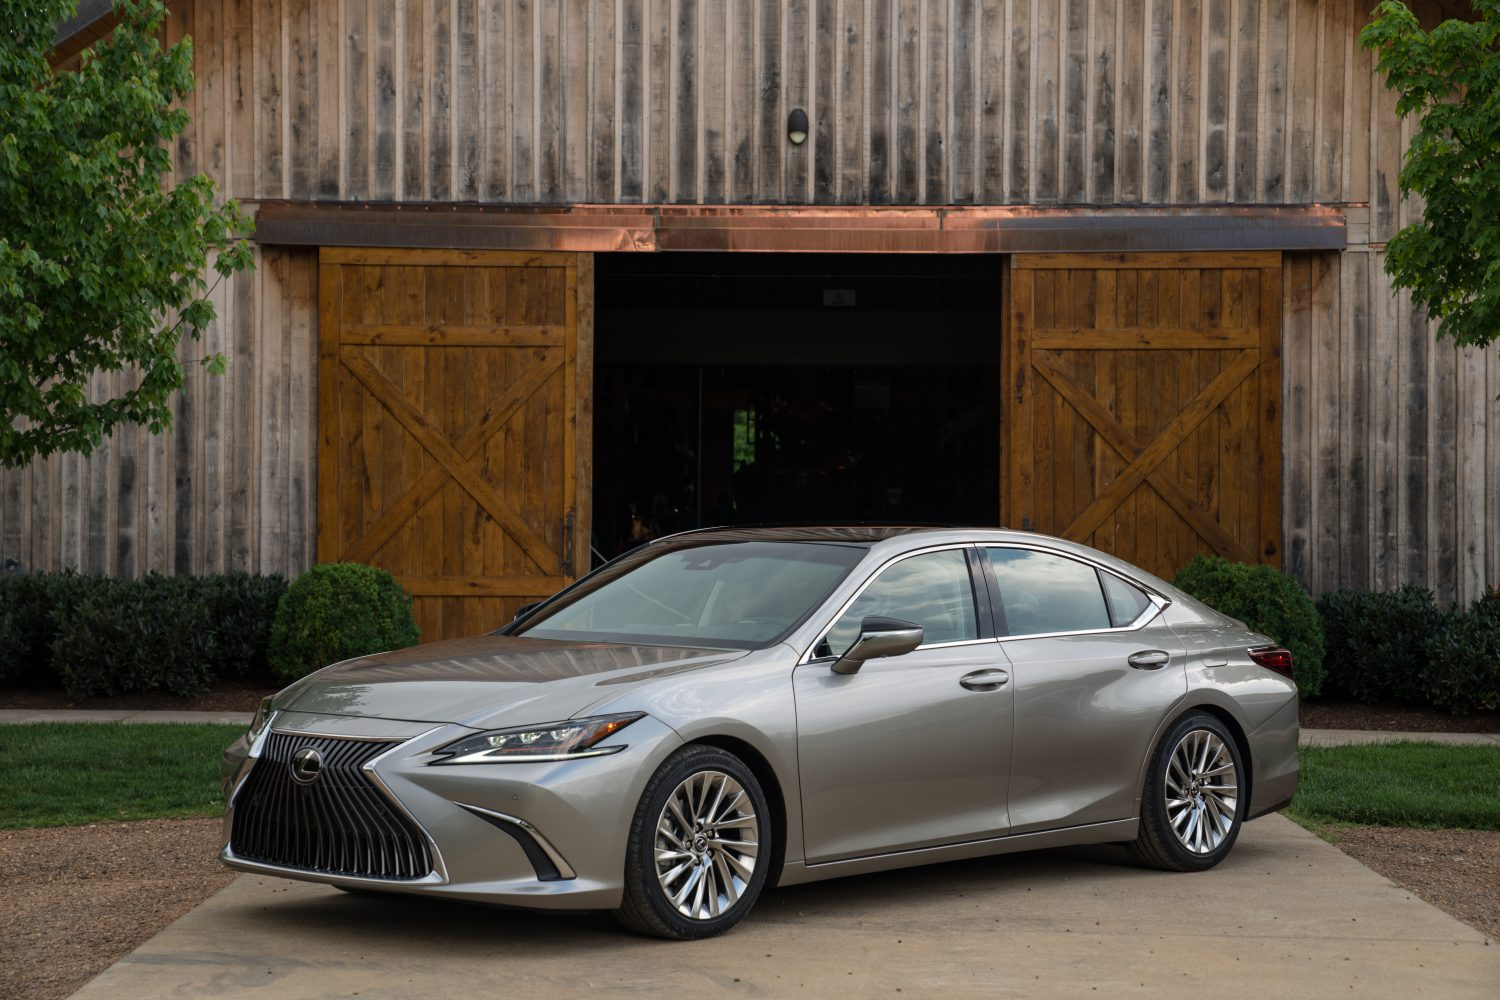 A New Level Of Performance And Sophistication The Next Generation Lexus Es Lexus Usa Newsroom